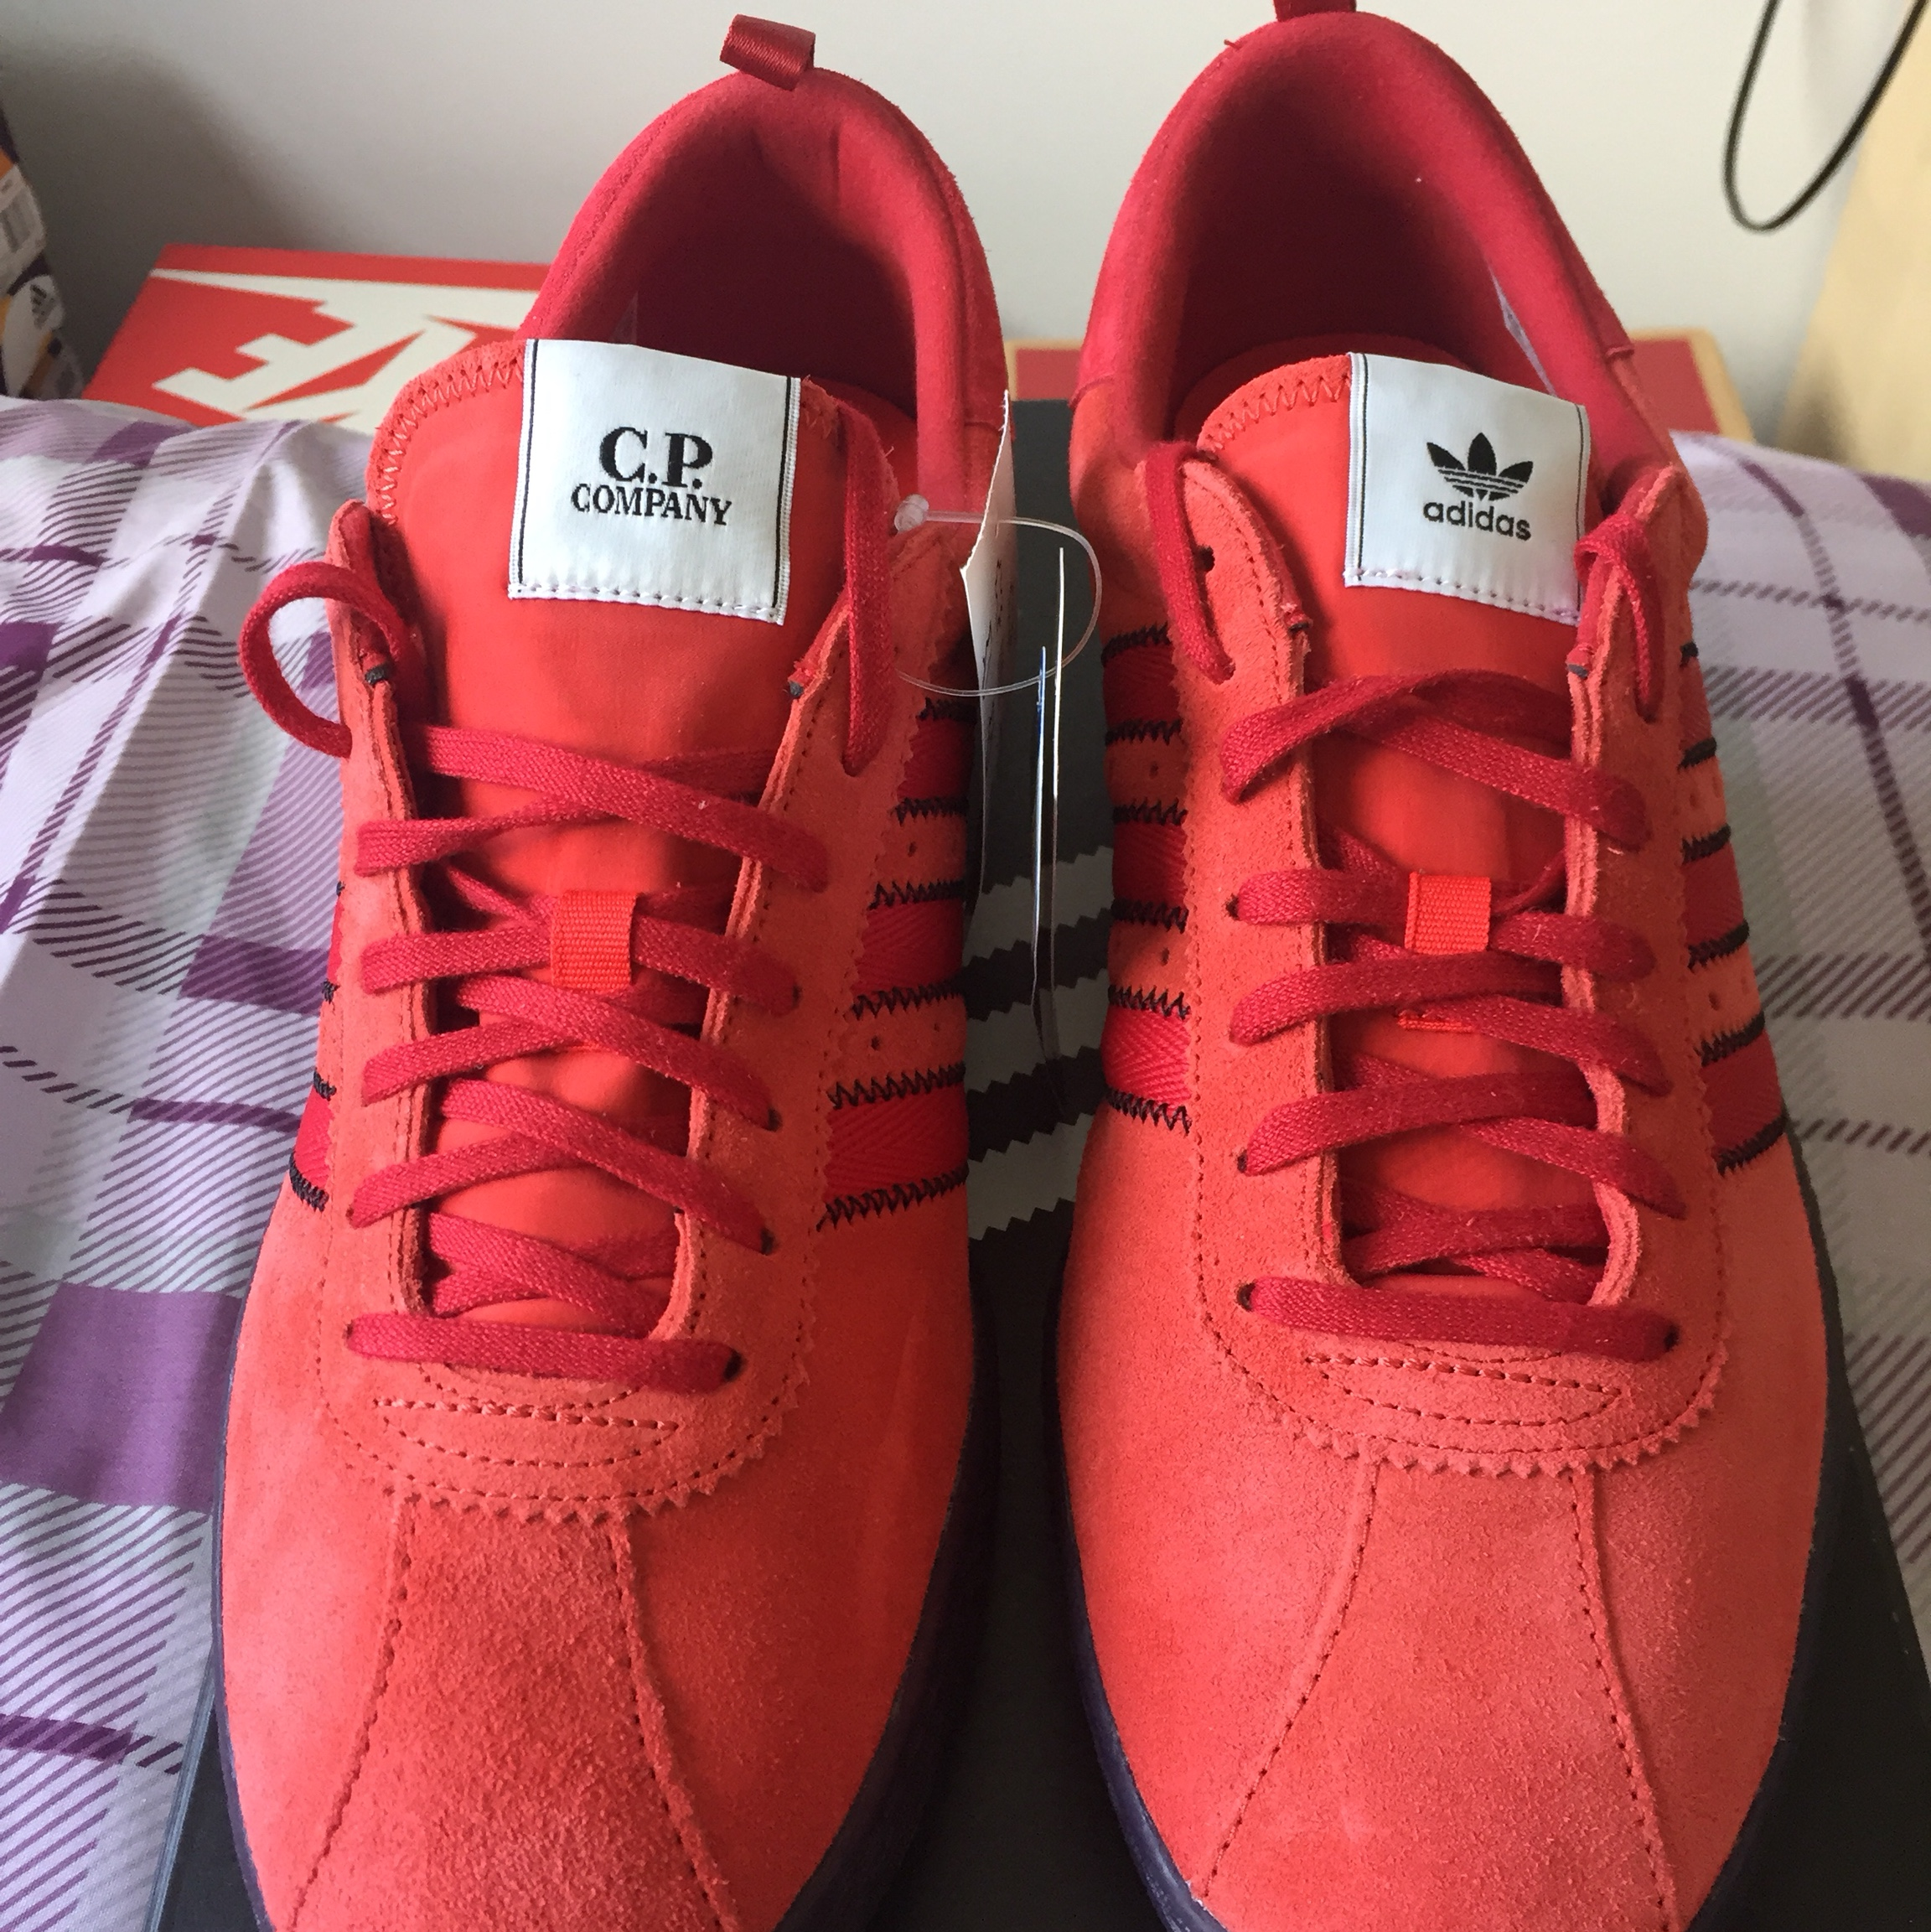 new concept c1181 1356d *RESERVED* Adidas X CP Company Tobacco | UK 11 ...